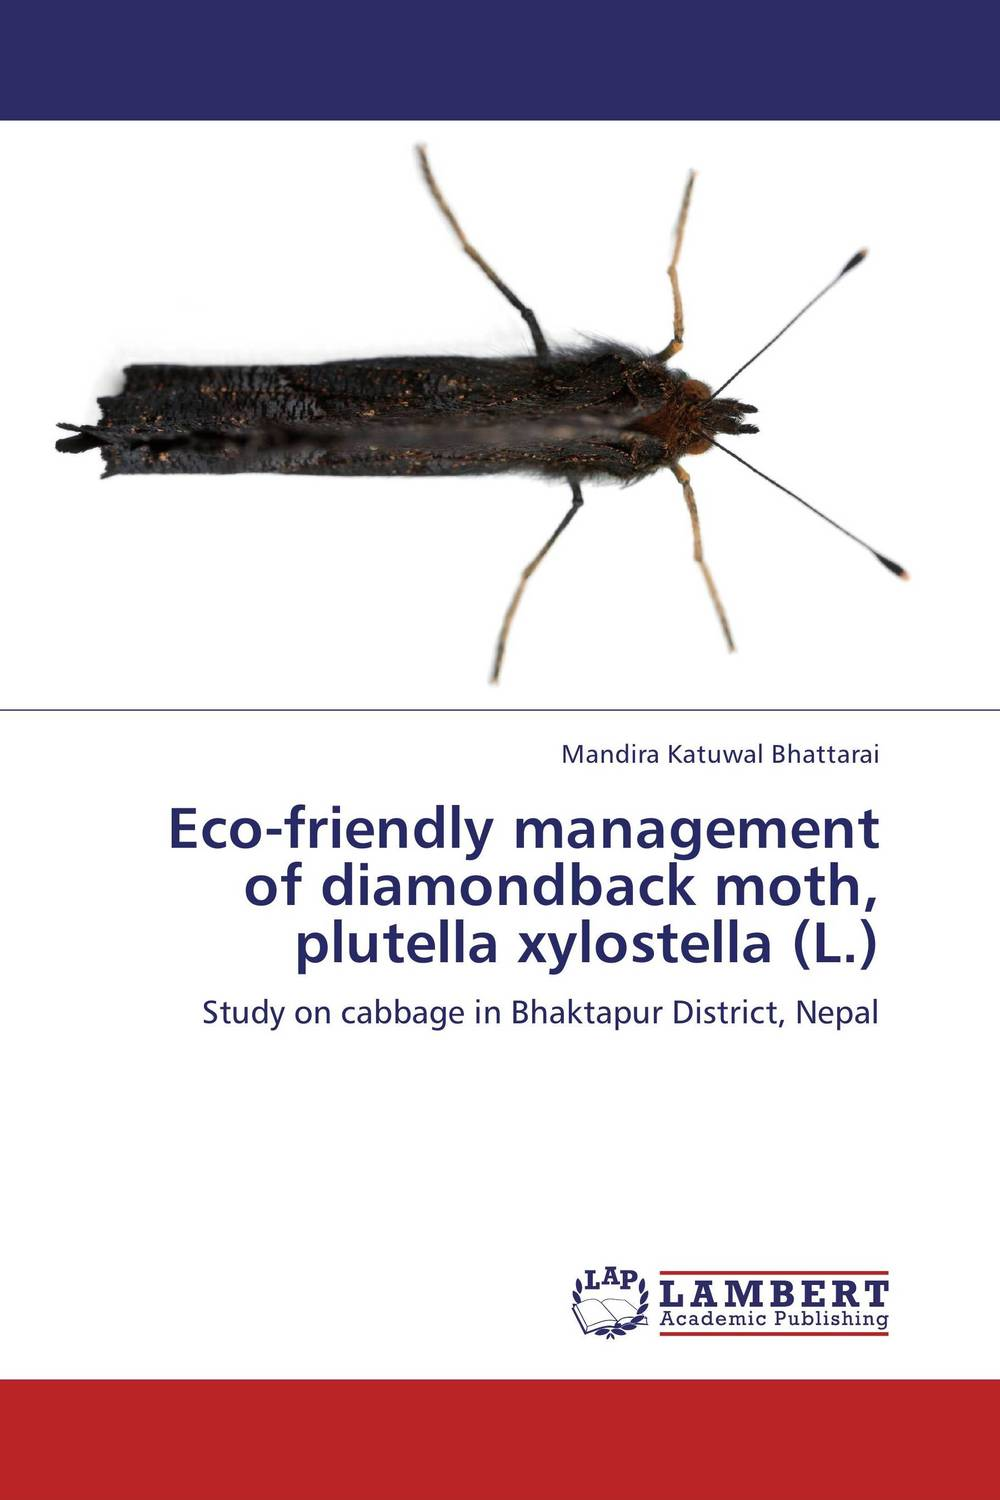 Eco-friendly management of diamondback moth, plutella xylostella (L.) eco friendly dyeing of silk with natural dye